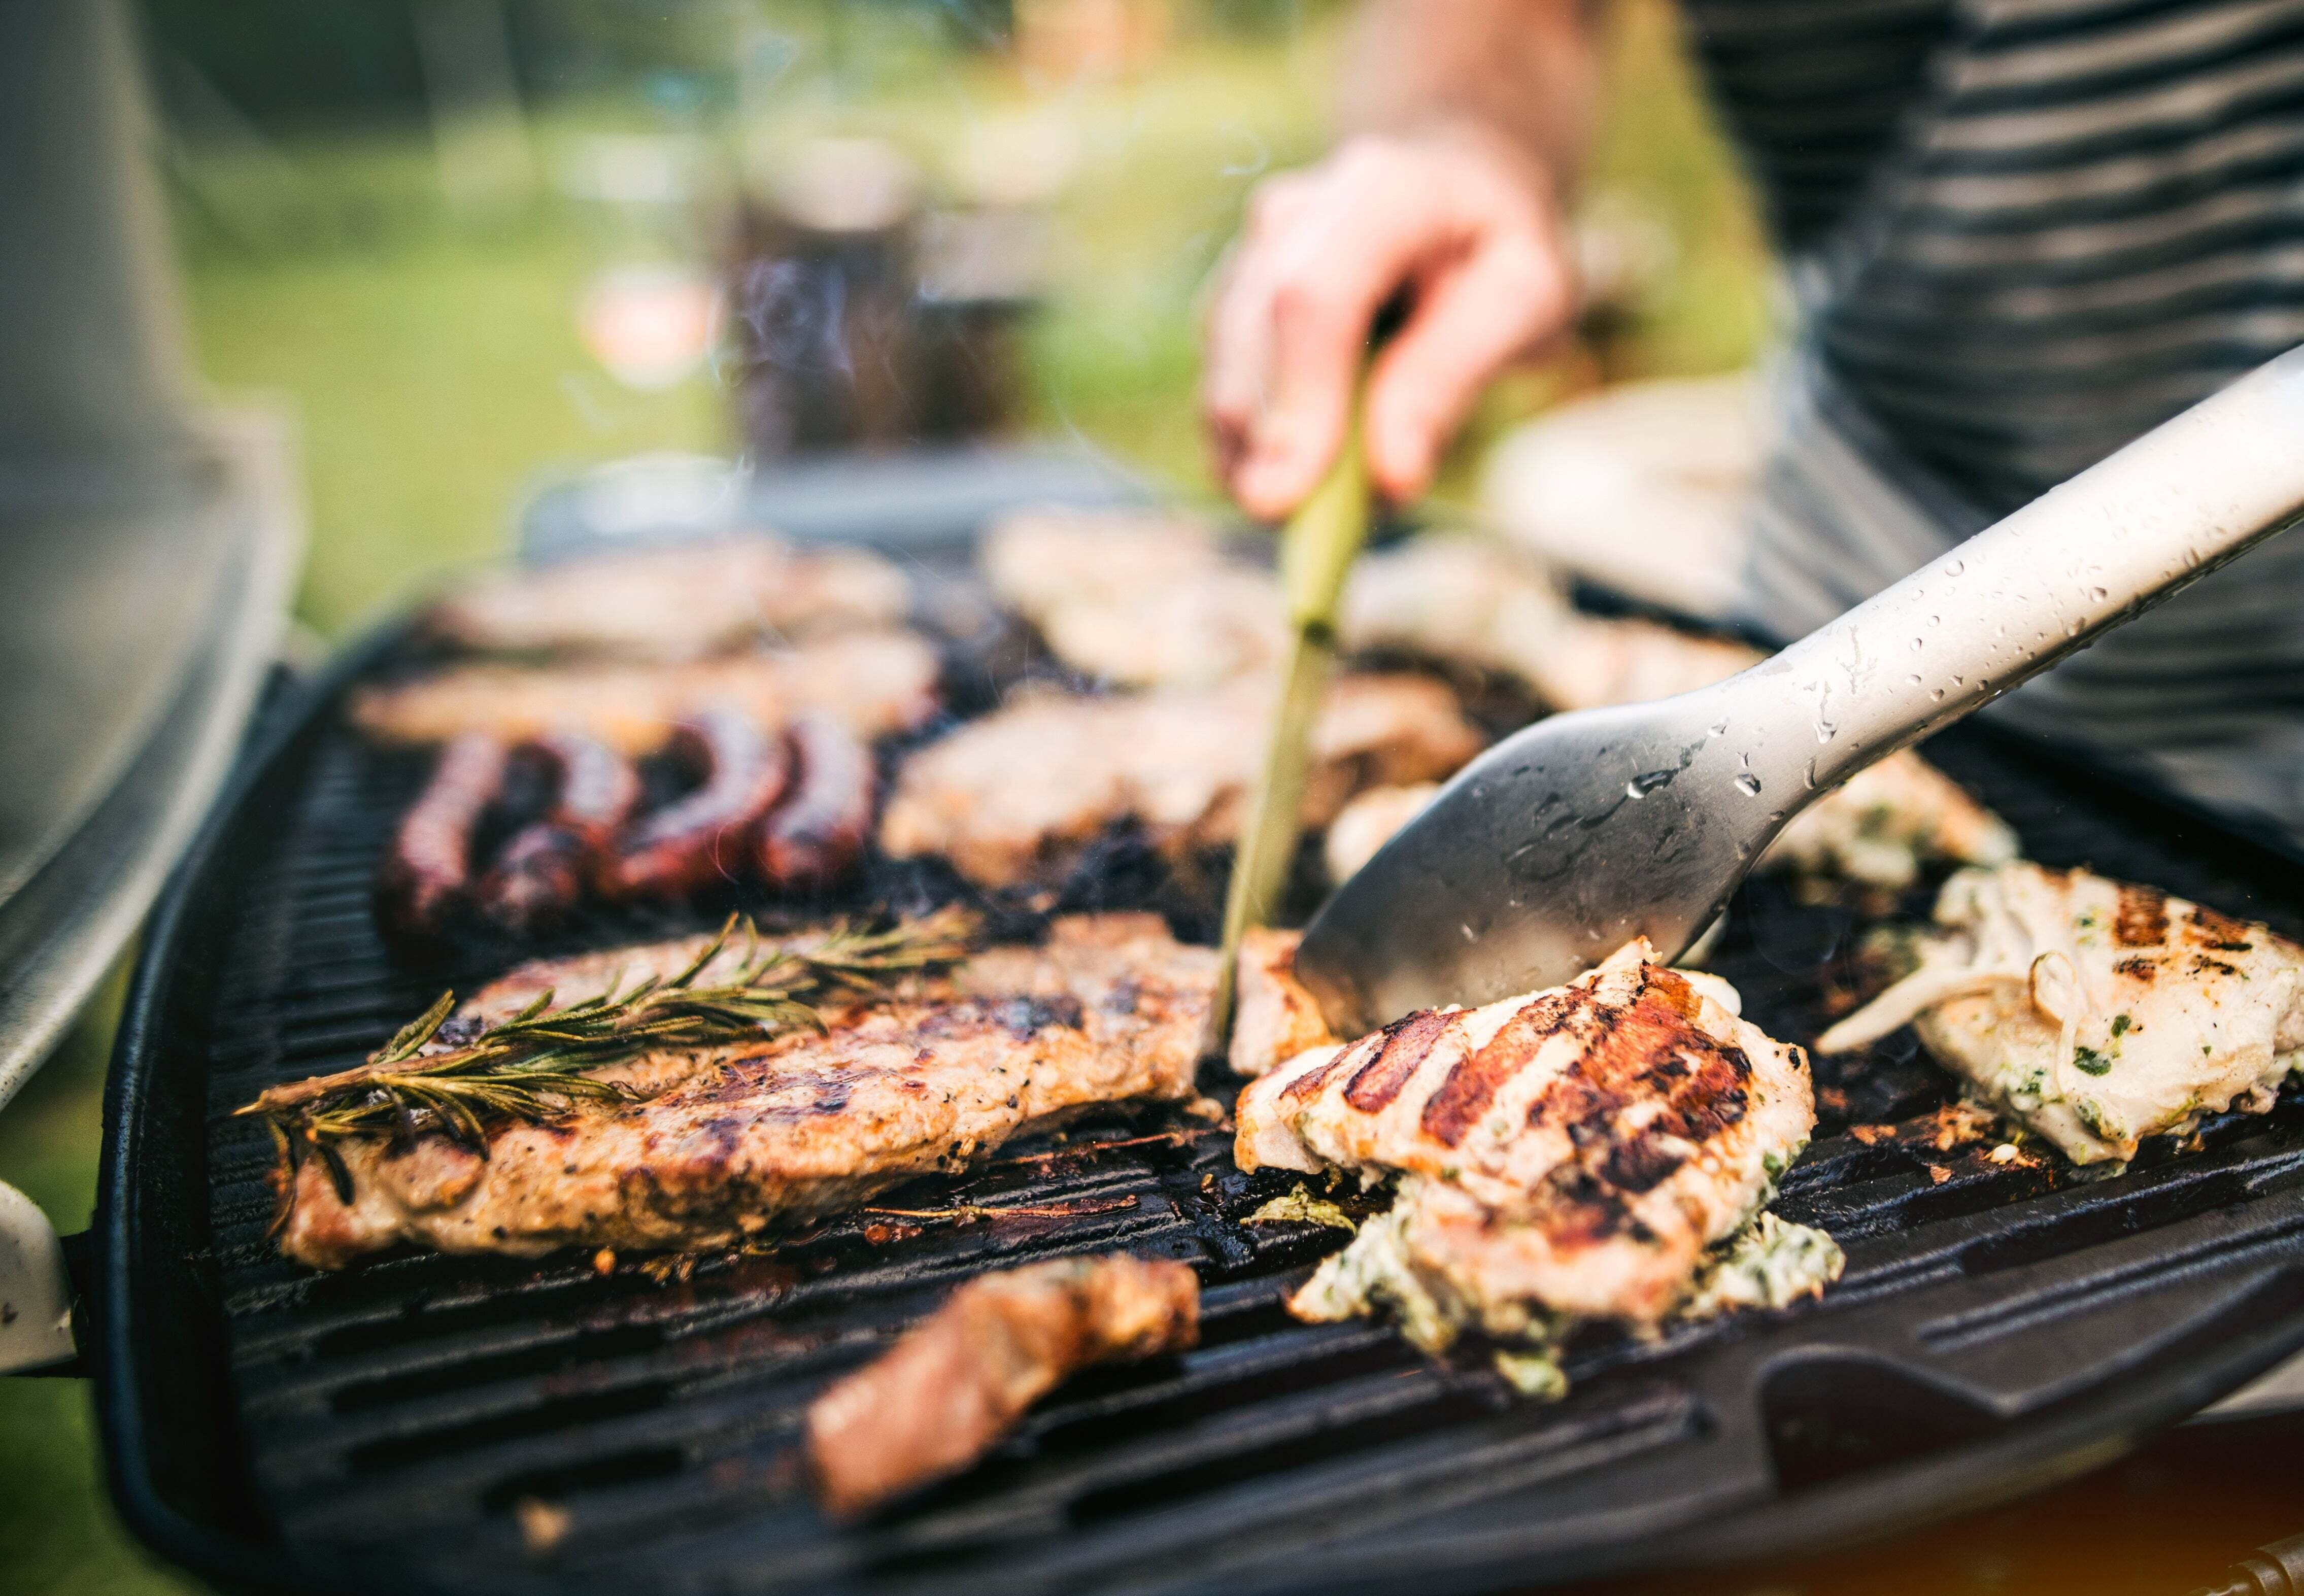 A man grilling chicken on an electric grill